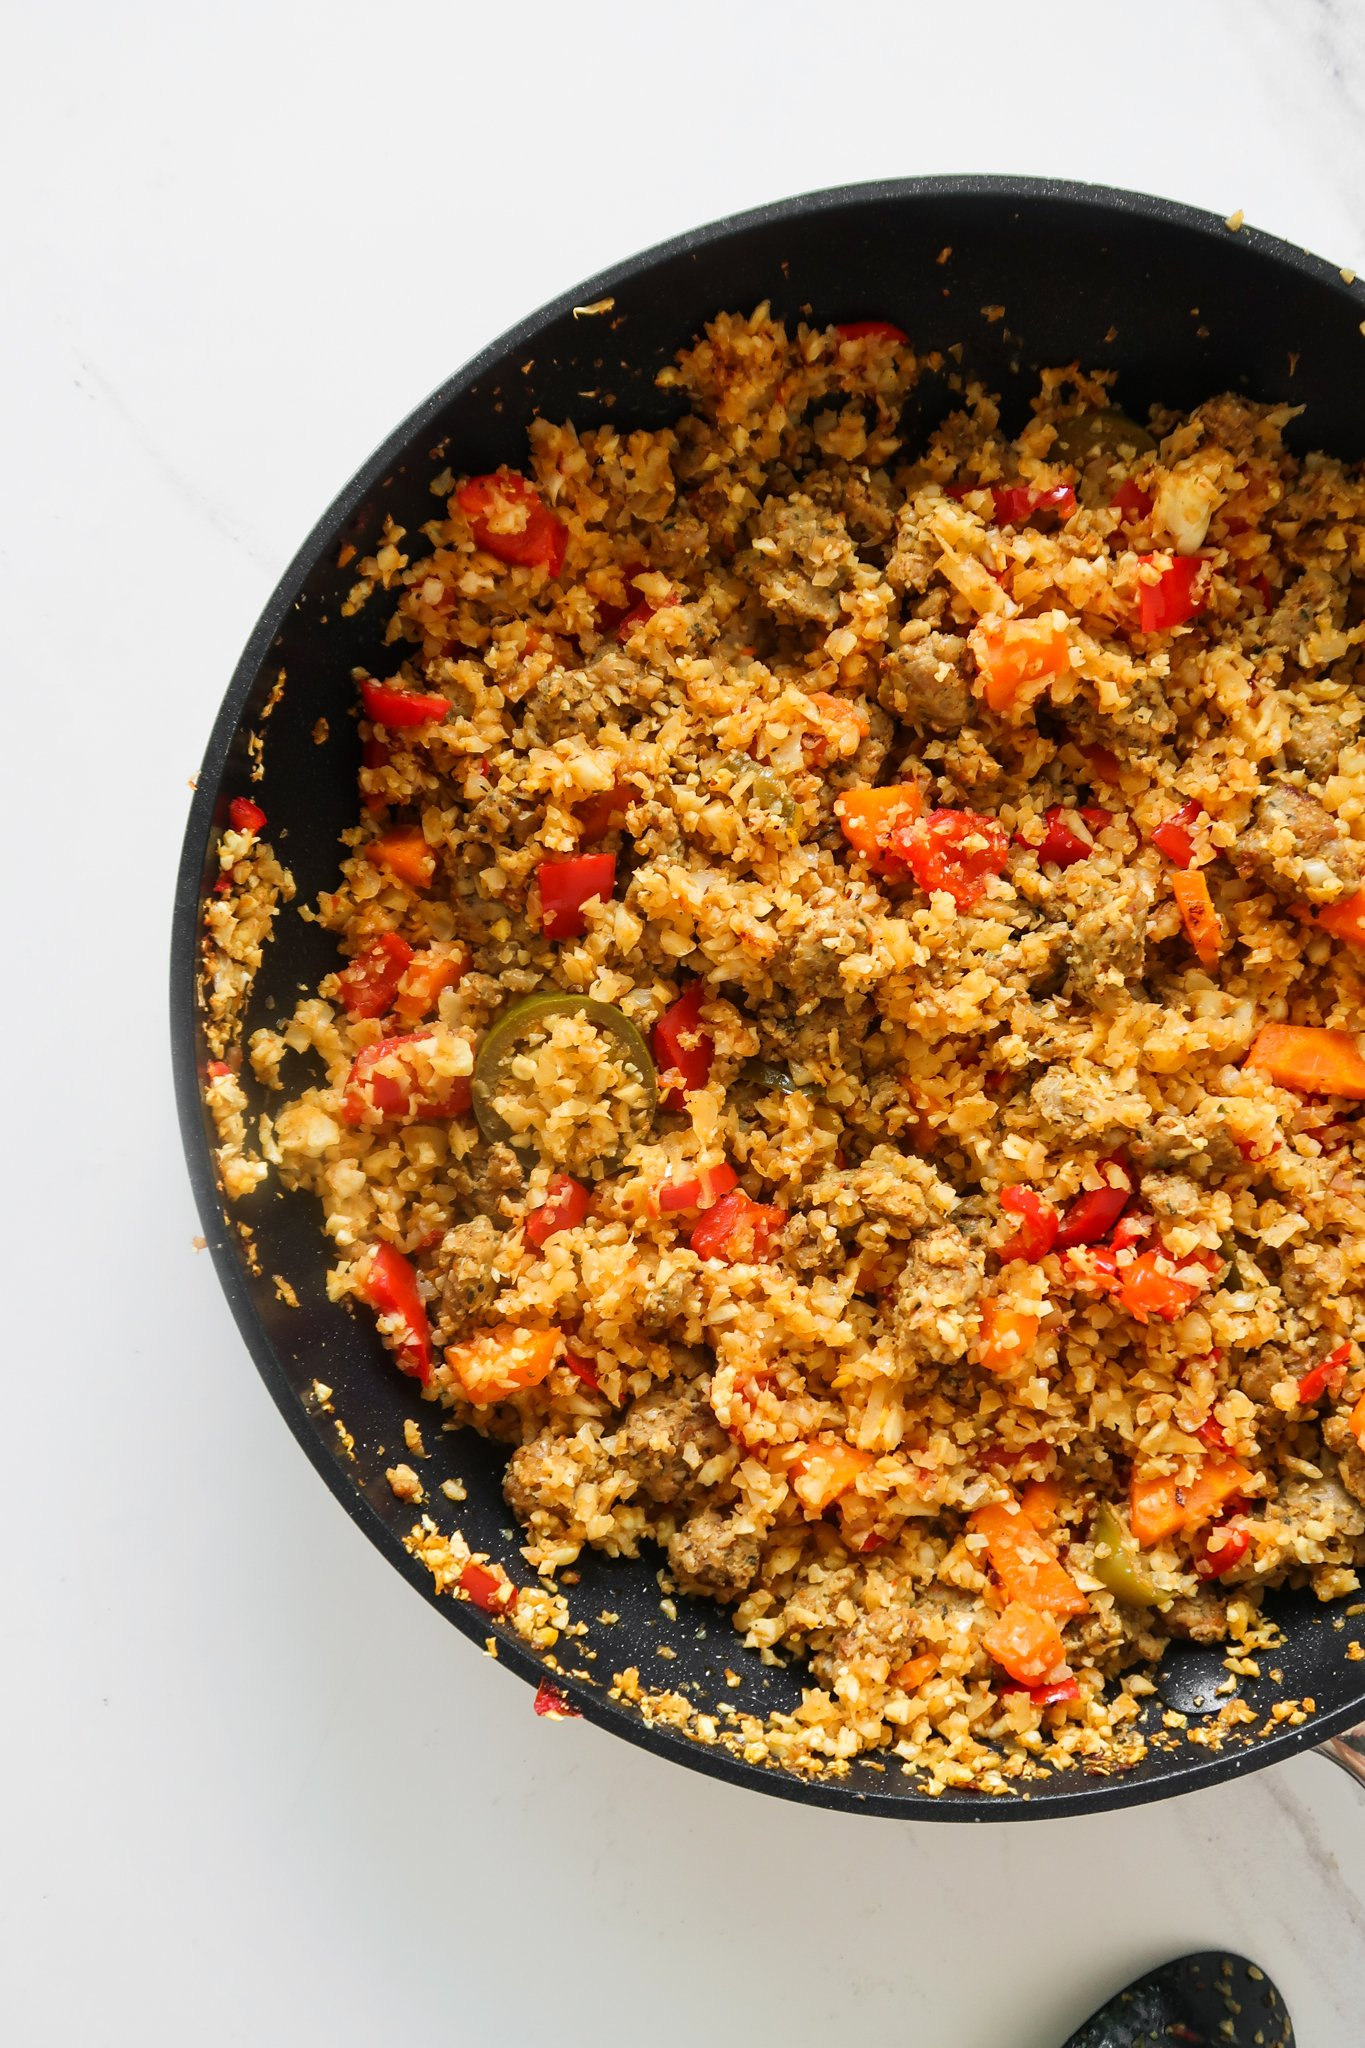 Super easy spicy cauliflower rice recipe with ground turkey, spices and vegetables - simple healthy dinner idea that you'll want to make again and again and again! Ready in about 20 minutes, this tasty cauliflower recipe is great if you're keeping a gluten-free dairy-free diet, it's also paleo and low carb. But even if you're not and simply want to add some new healthy meals to your weekly meal prep this is for you as well.